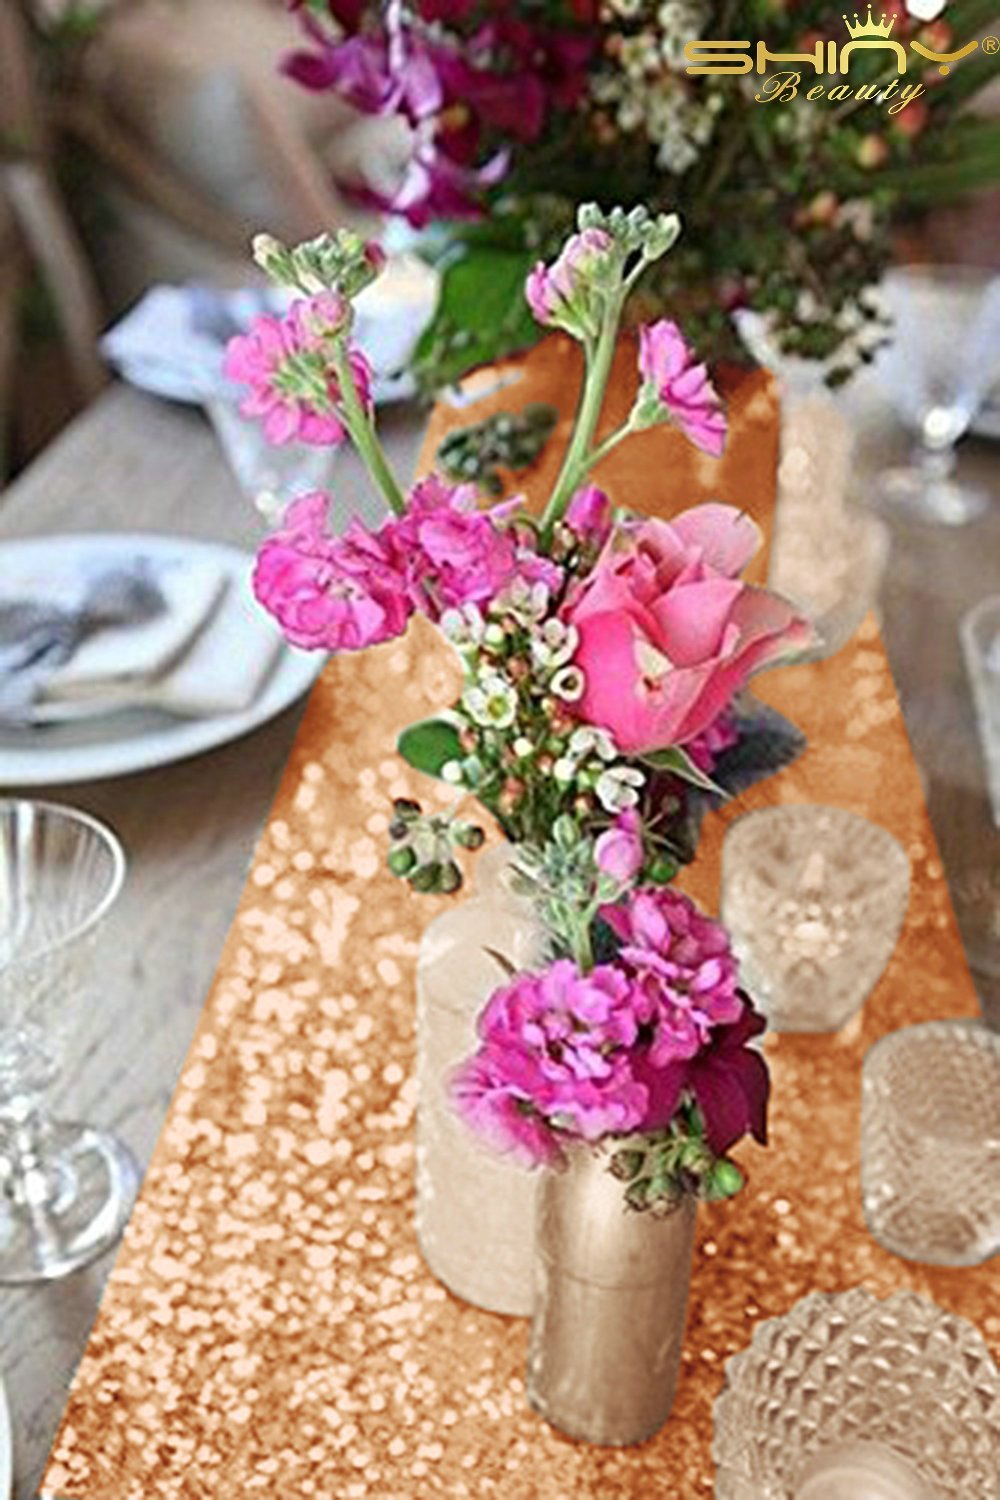 Rose Gold Bridal Shower Decorations 5Pcs Rose Gold 12''x72'' Sequin Table Runners Rose Gold Party Supplies ~723S by ShiDianYi (Image #3)